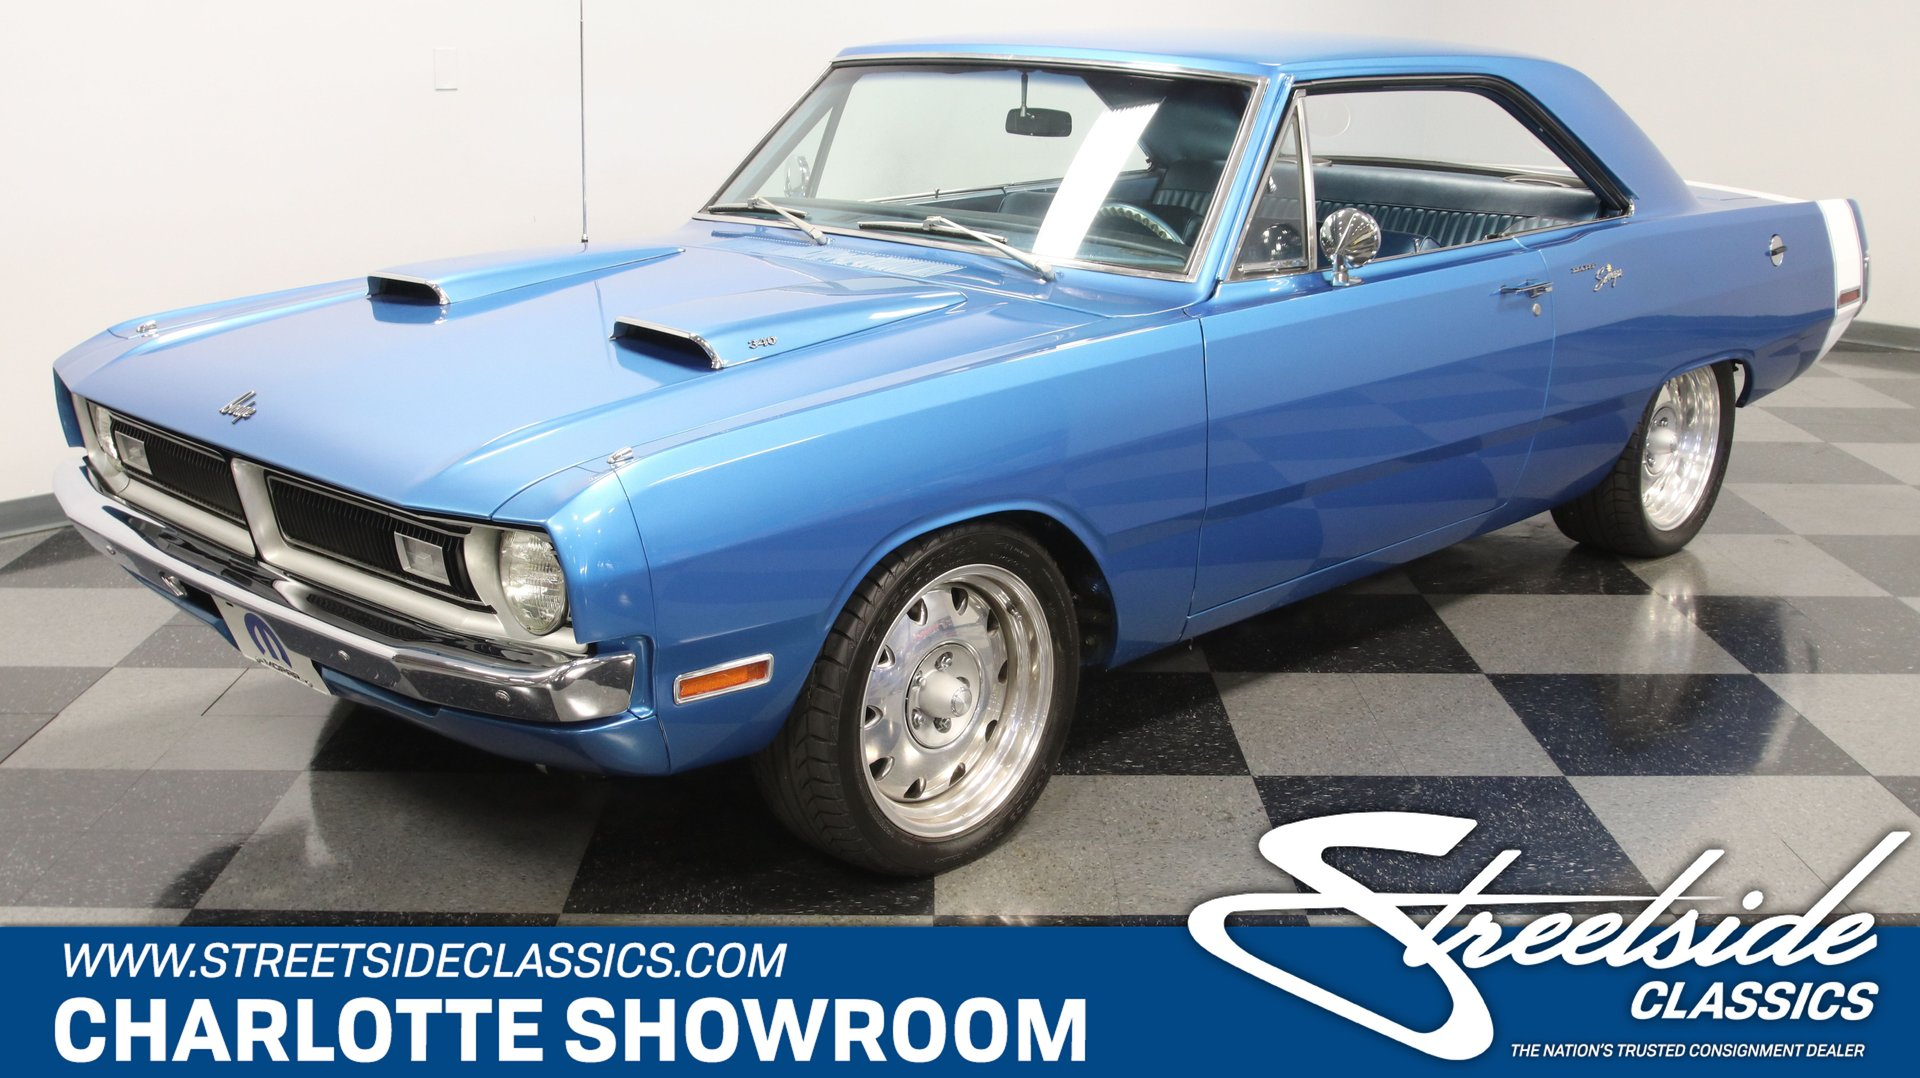 1970 Dodge Dart Classic Cars For Sale Streetside Classics The Nation S 1 Consignment Dealer